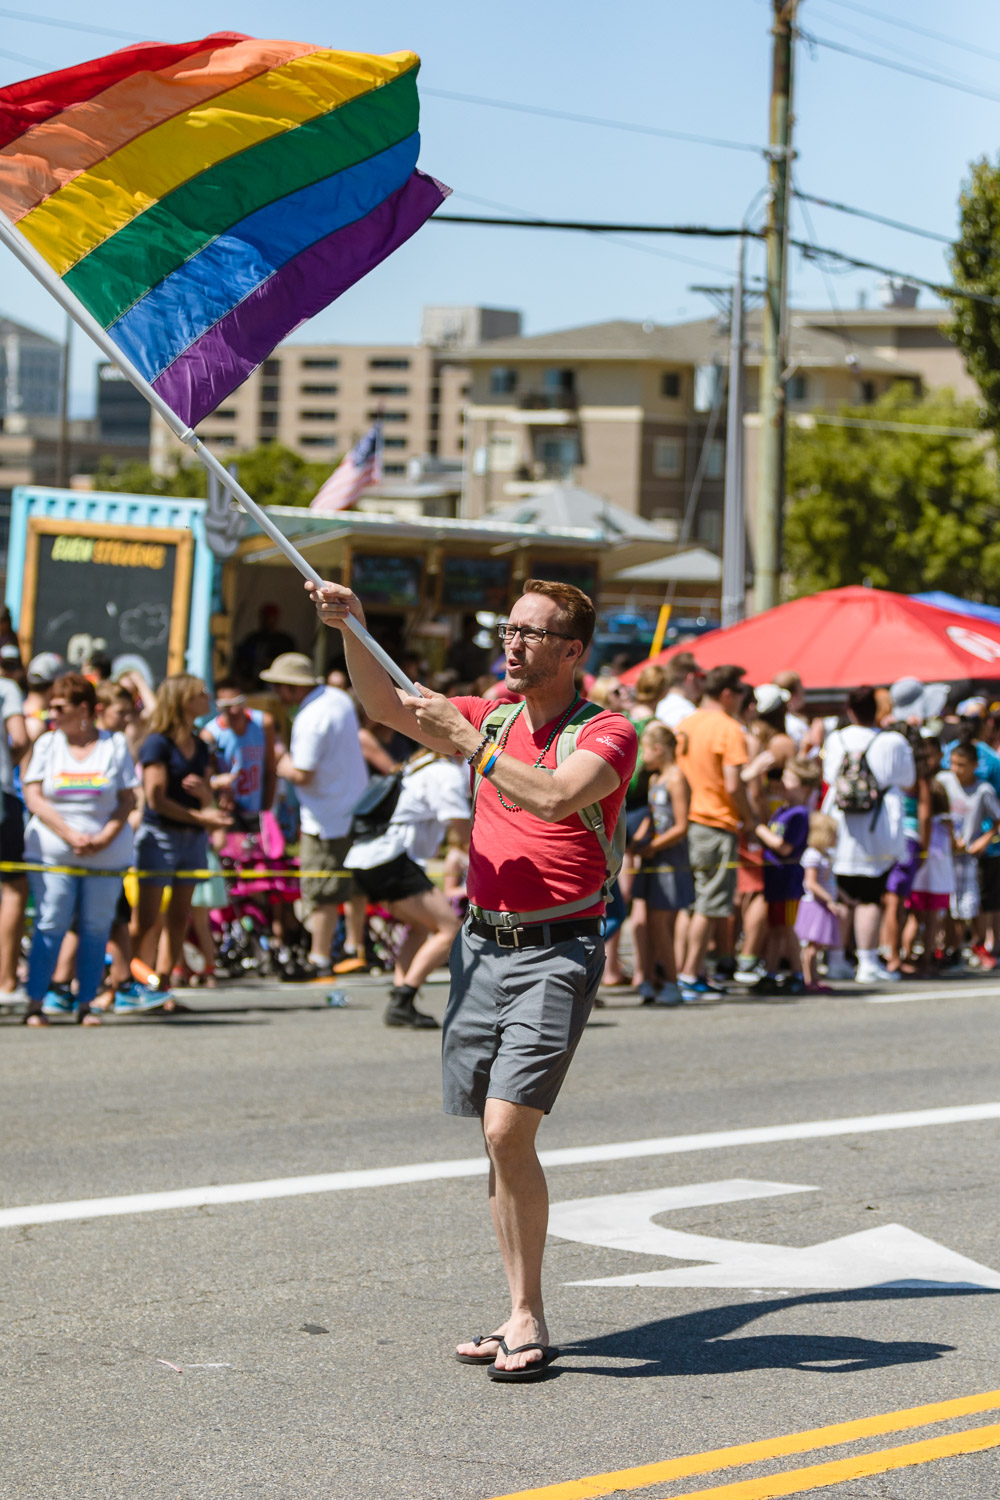 As far as you can see, people celebrating Pride as they make their way from downtown SLC. Photo: Logan Sorenson | Lmsorenson.net